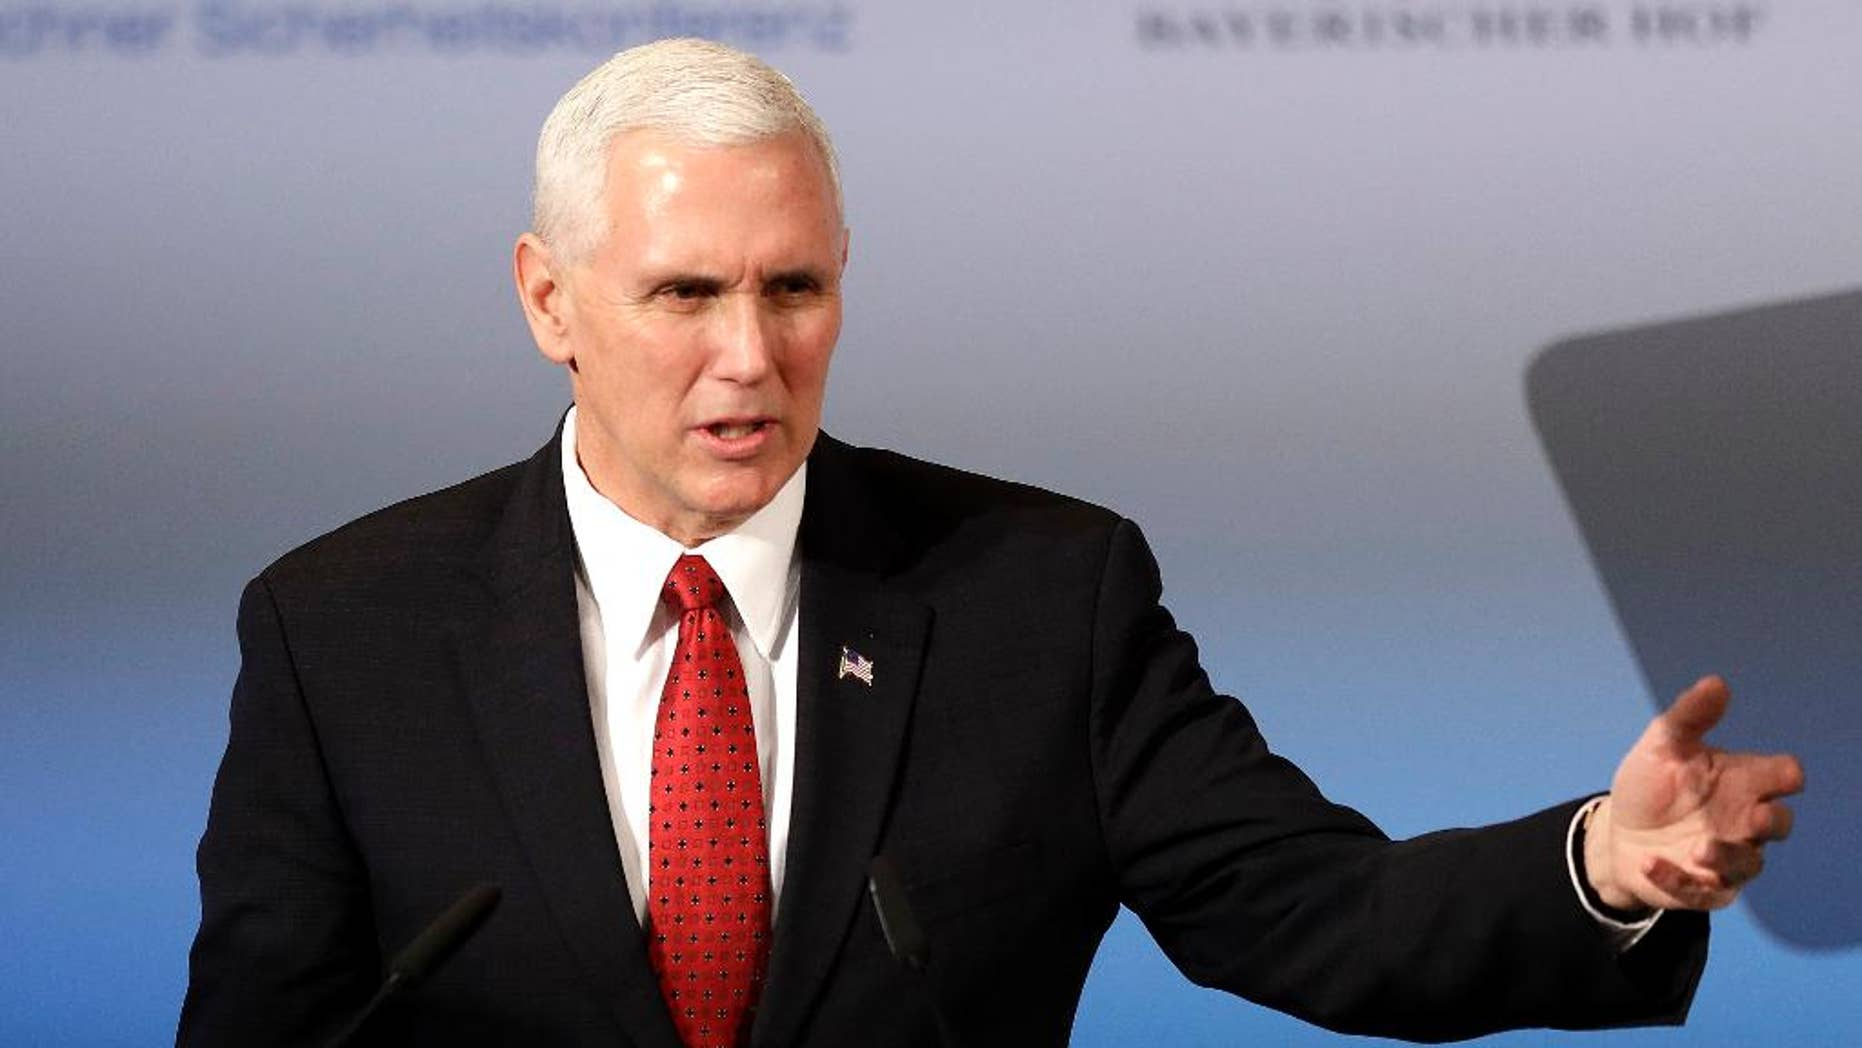 Vice President Mike Pence speaks during the Munich Security Conference in Munich, Germany, Saturday, Feb. 18, 2017.